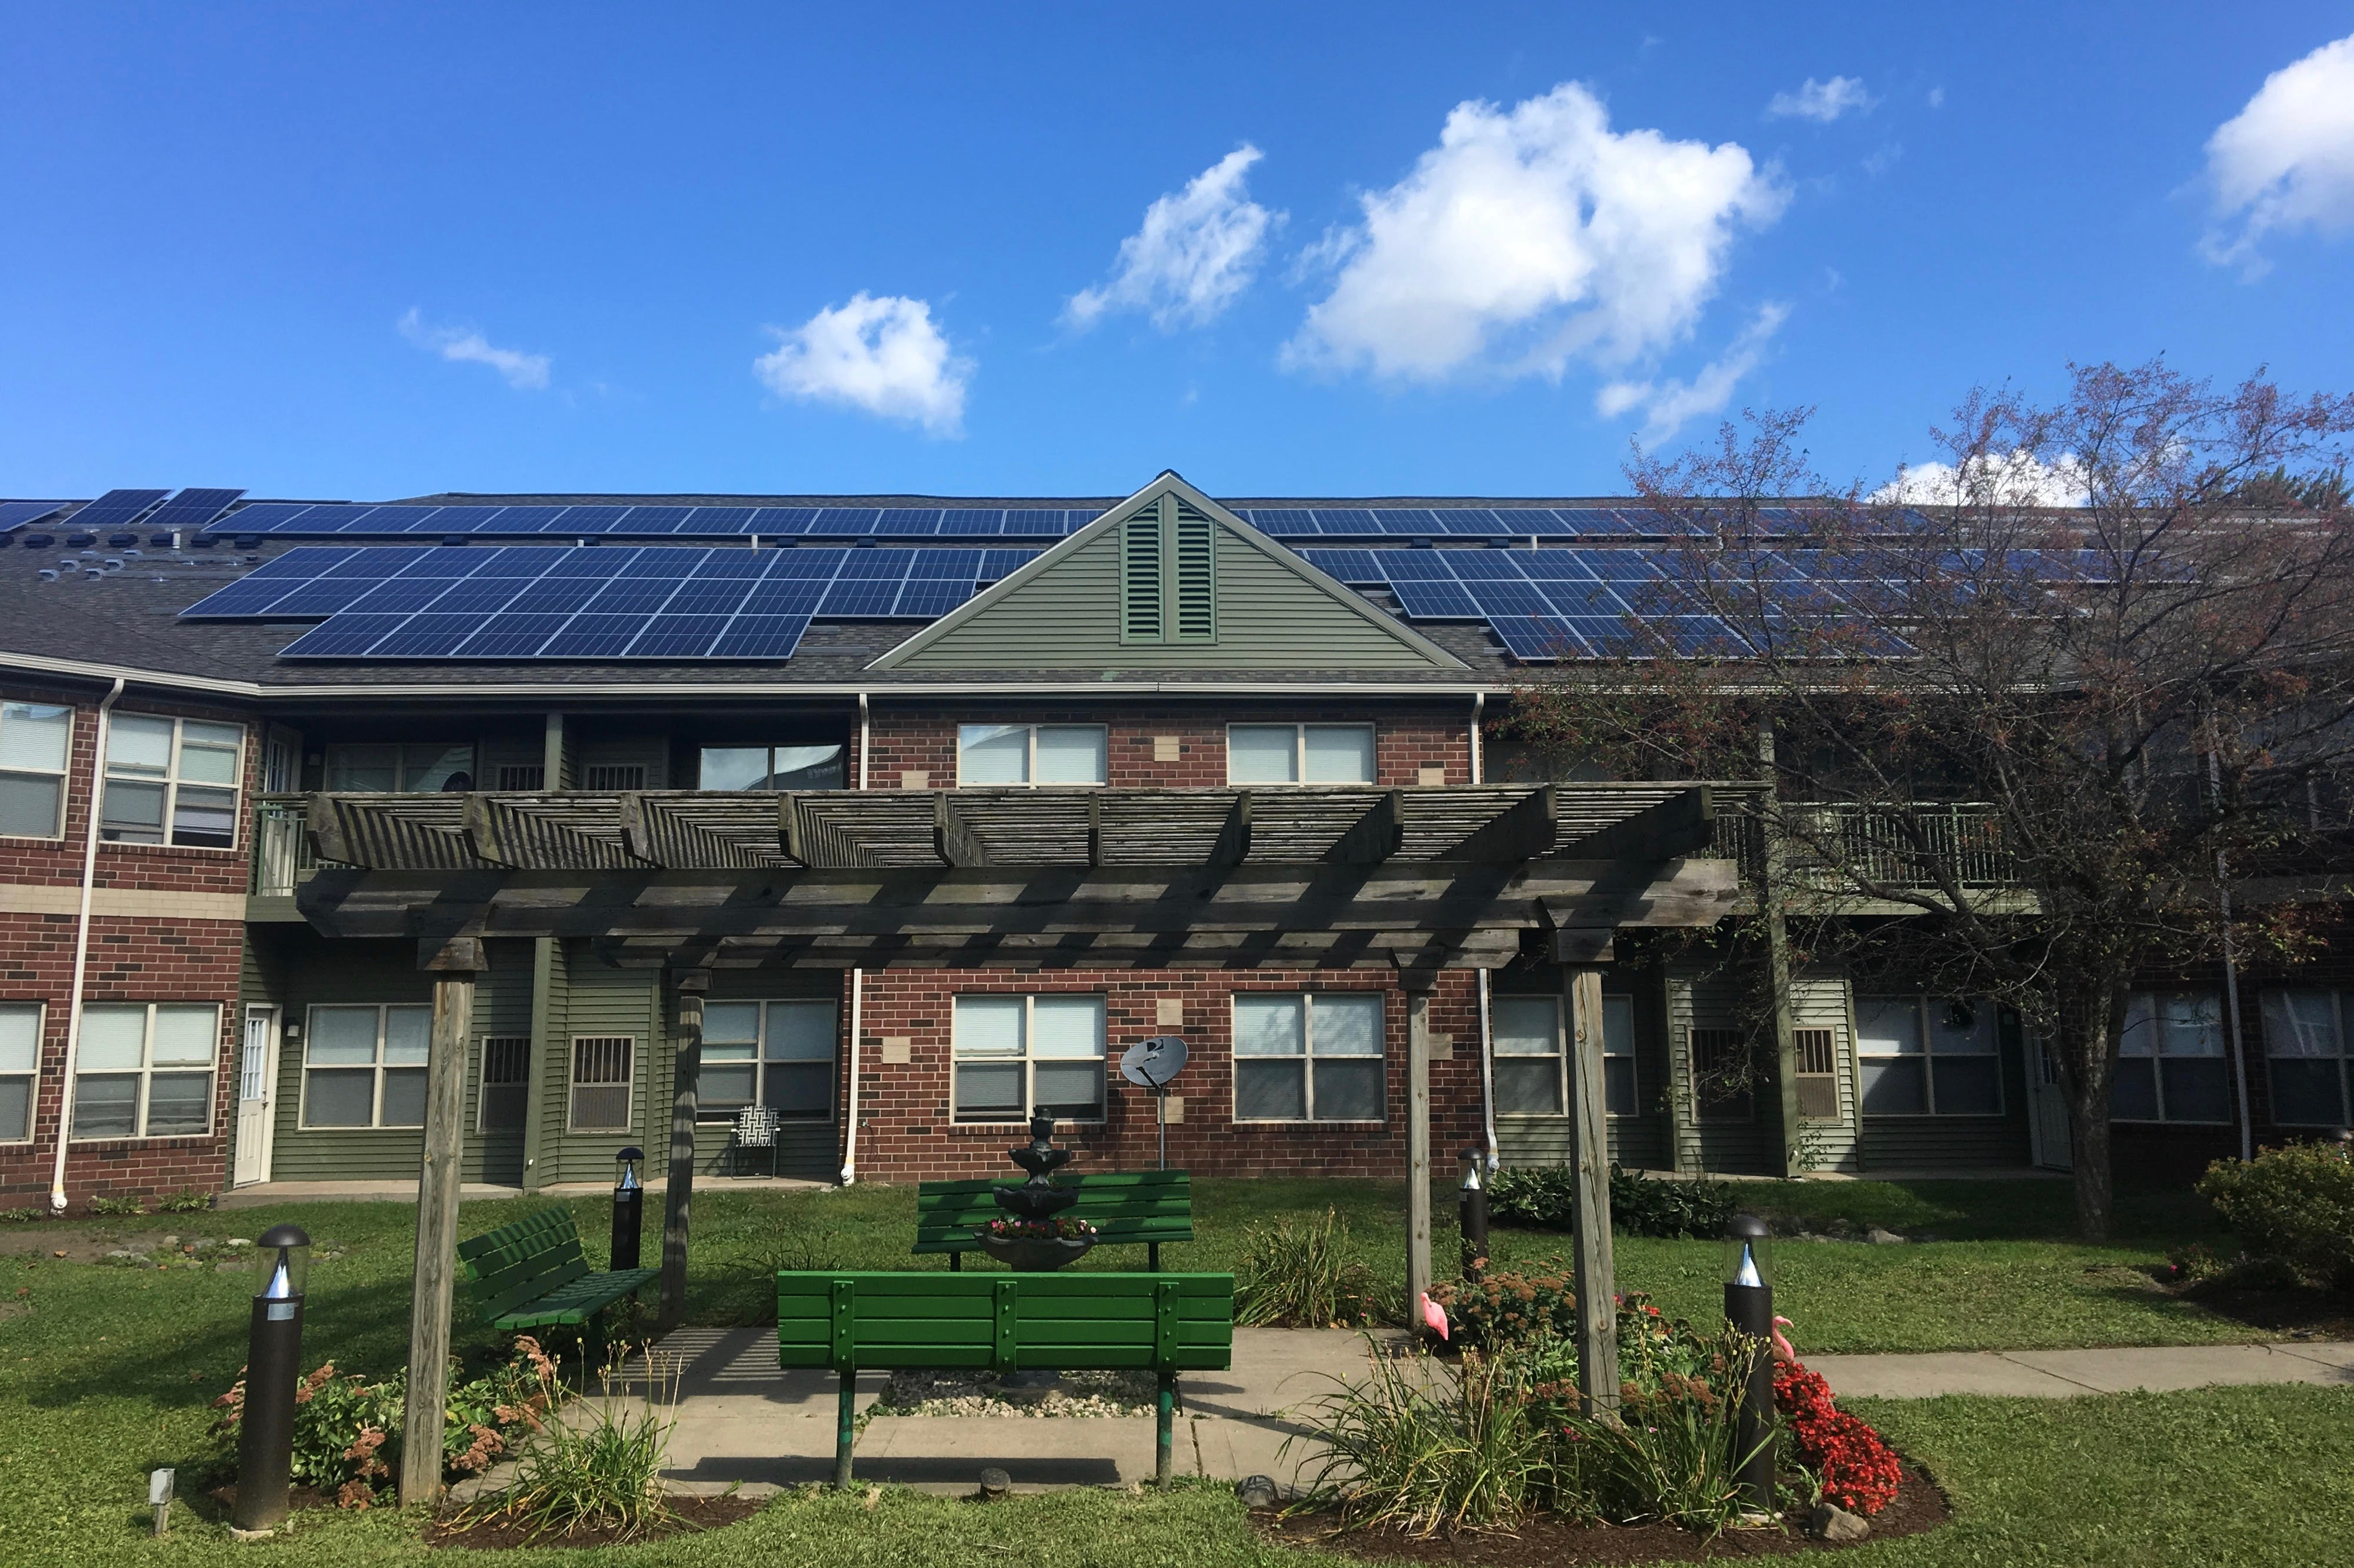 Does solar energy have a future in Detroit?